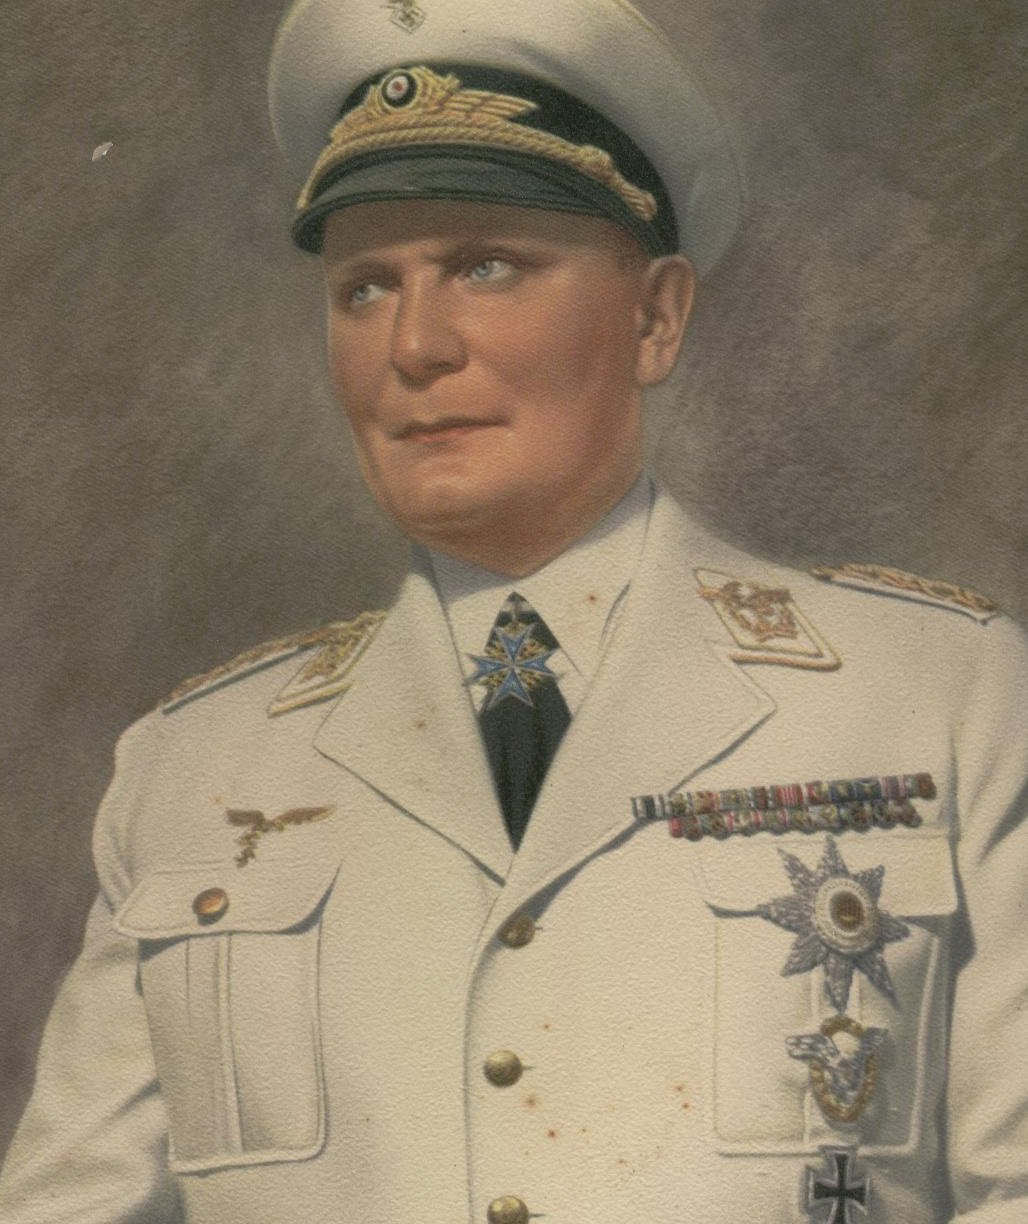 Hermann Goering with his self-awarded medals